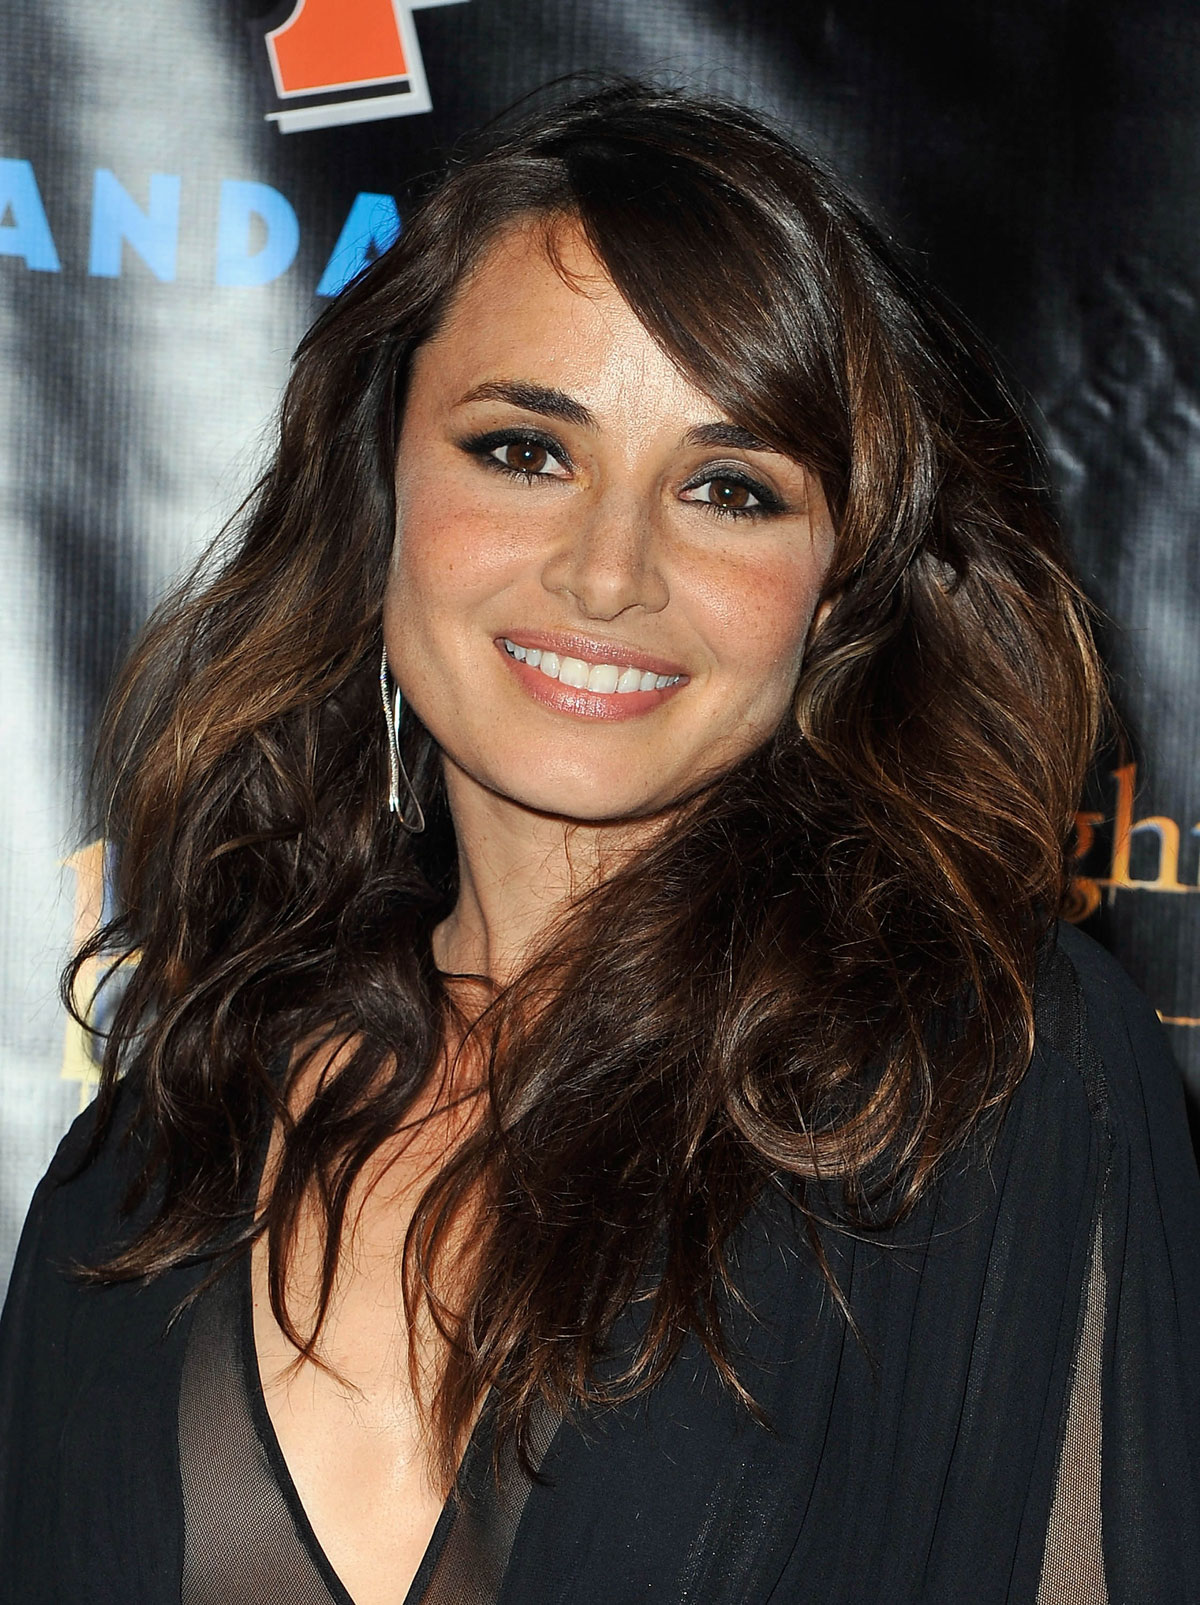 Ass Mia Maestro nudes (78 photo), Pussy, Is a cute, Boobs, butt 2015